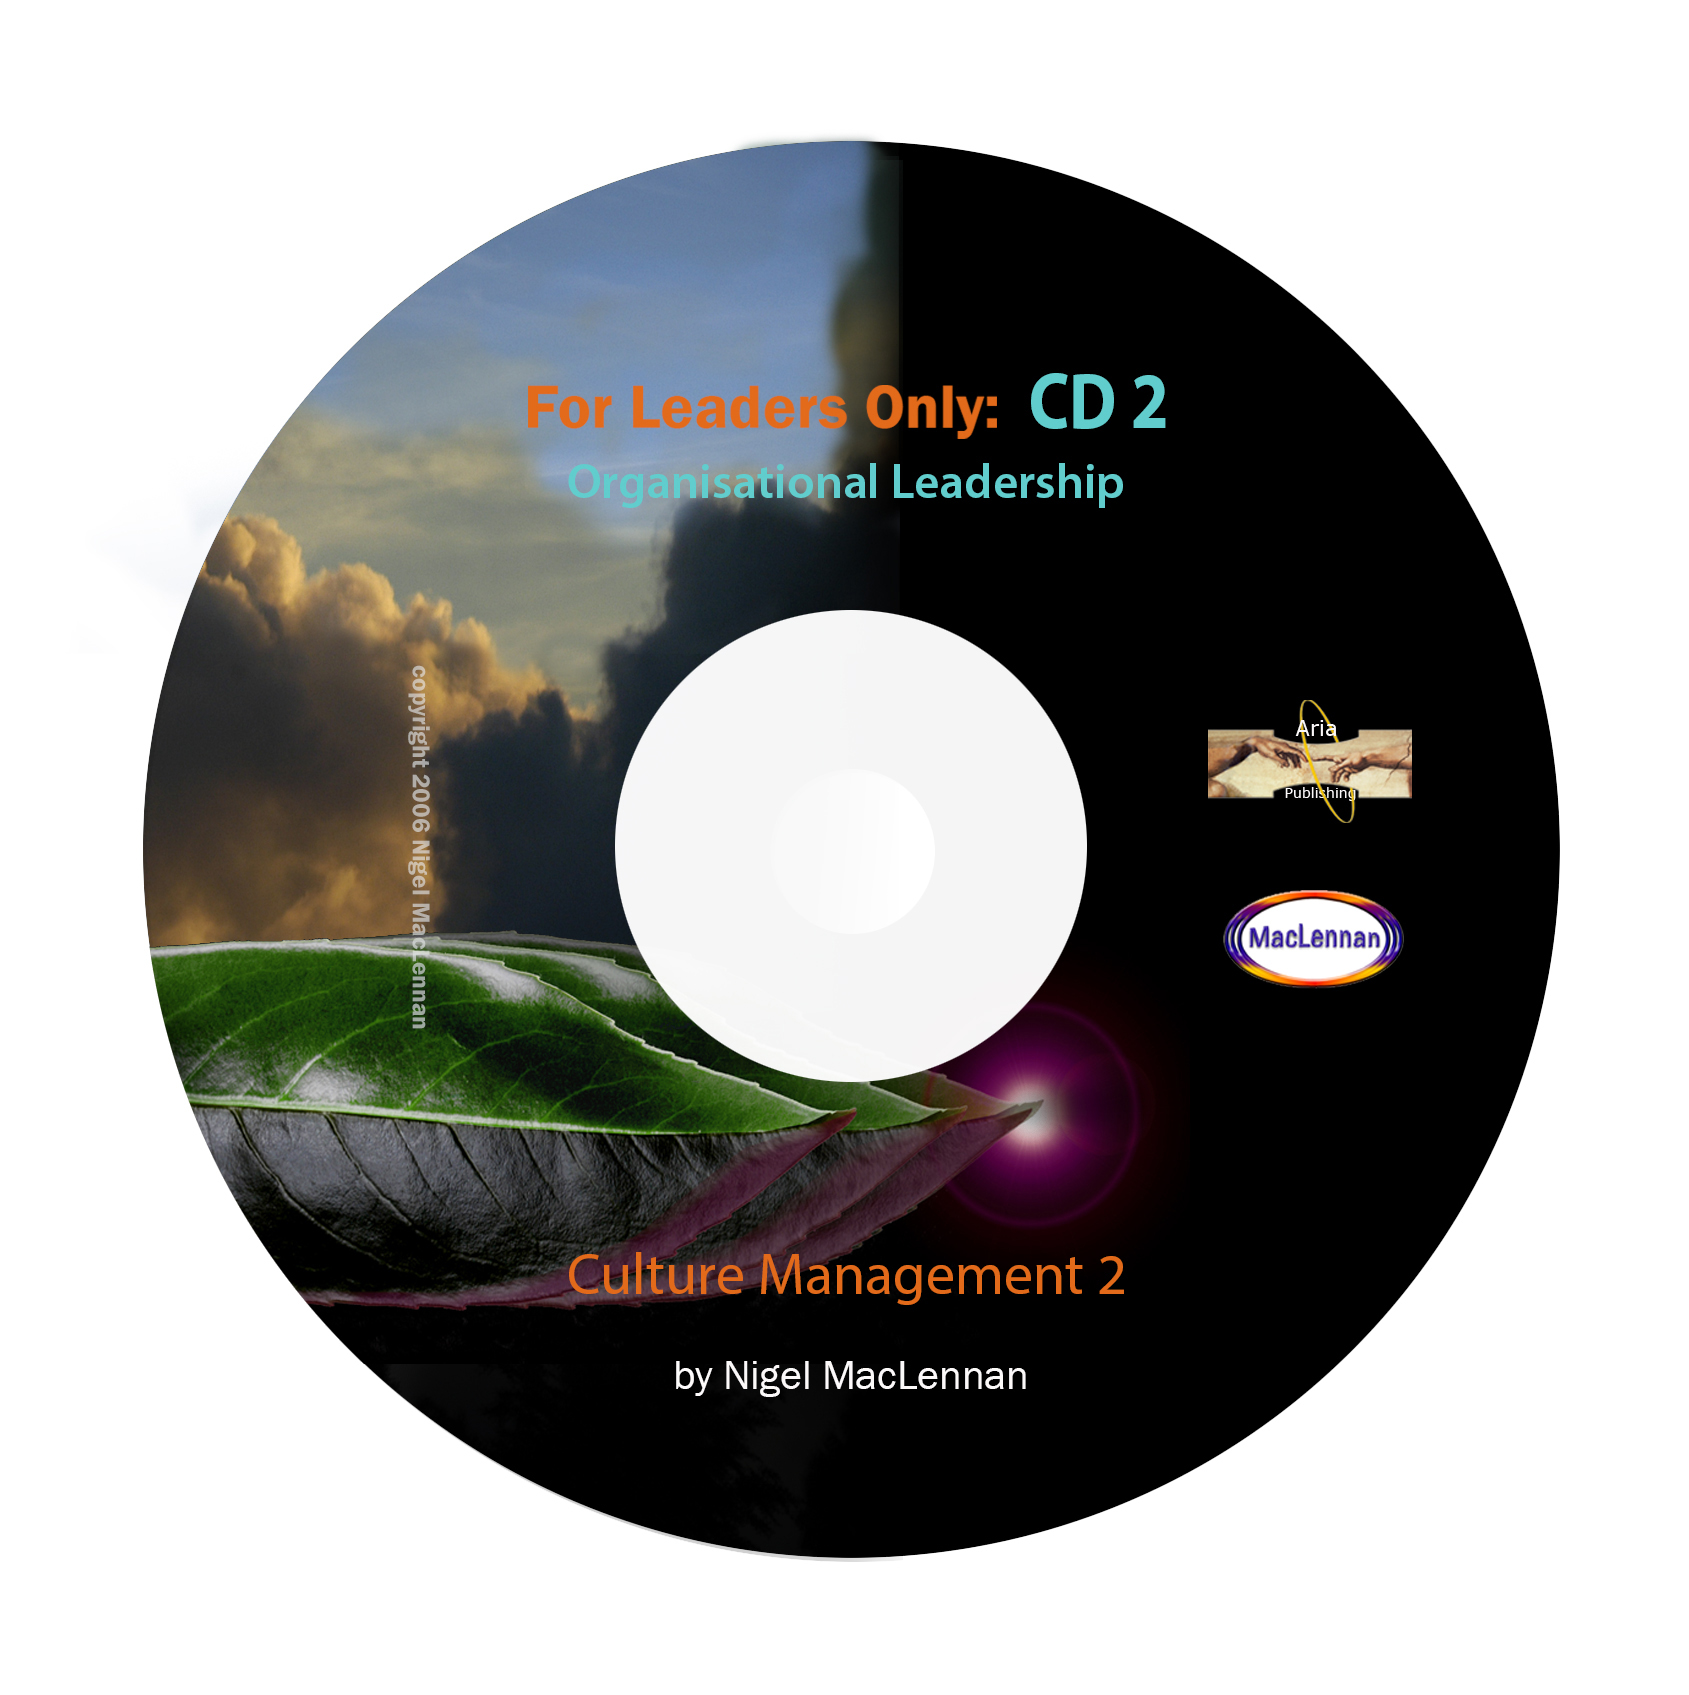 For Leaders Only - Culture Management 2 CD